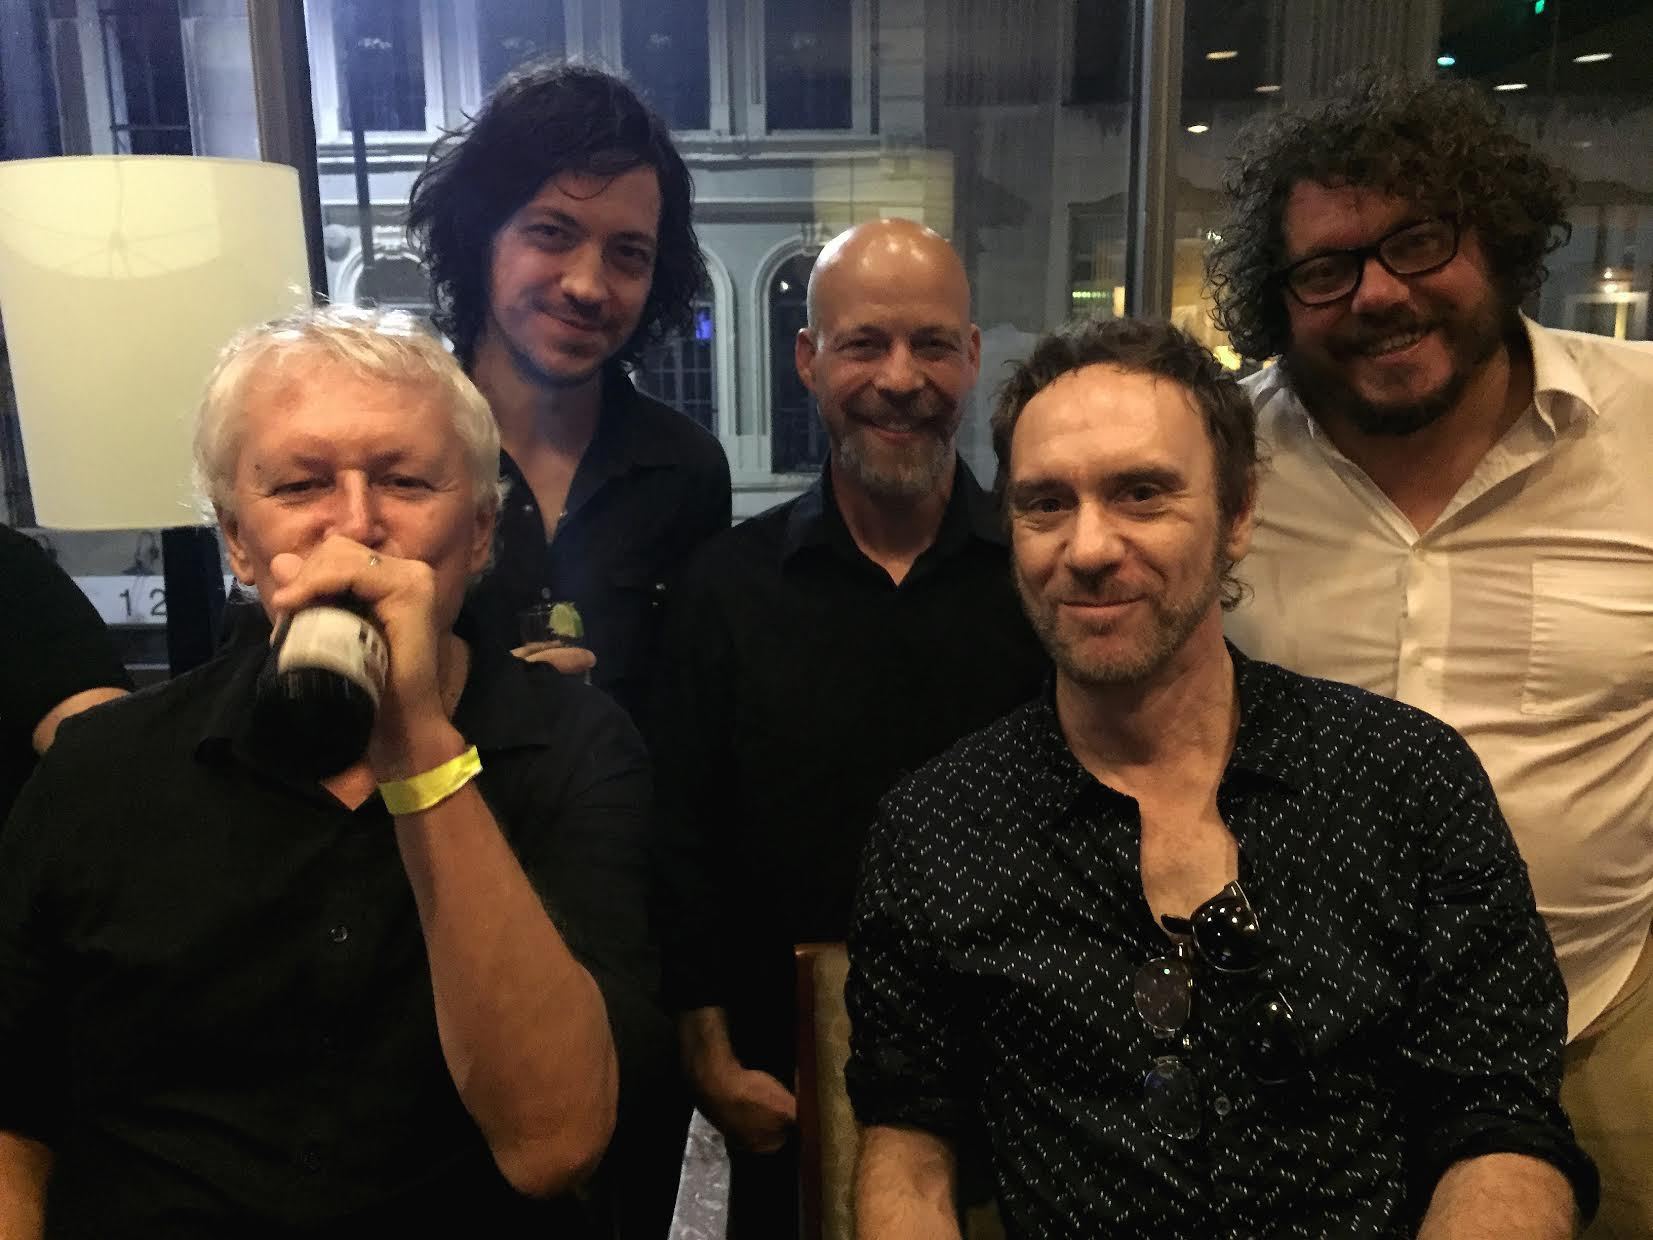 Doug Gillard rejoins Guided By Voices, will play tour dates and record on next album.